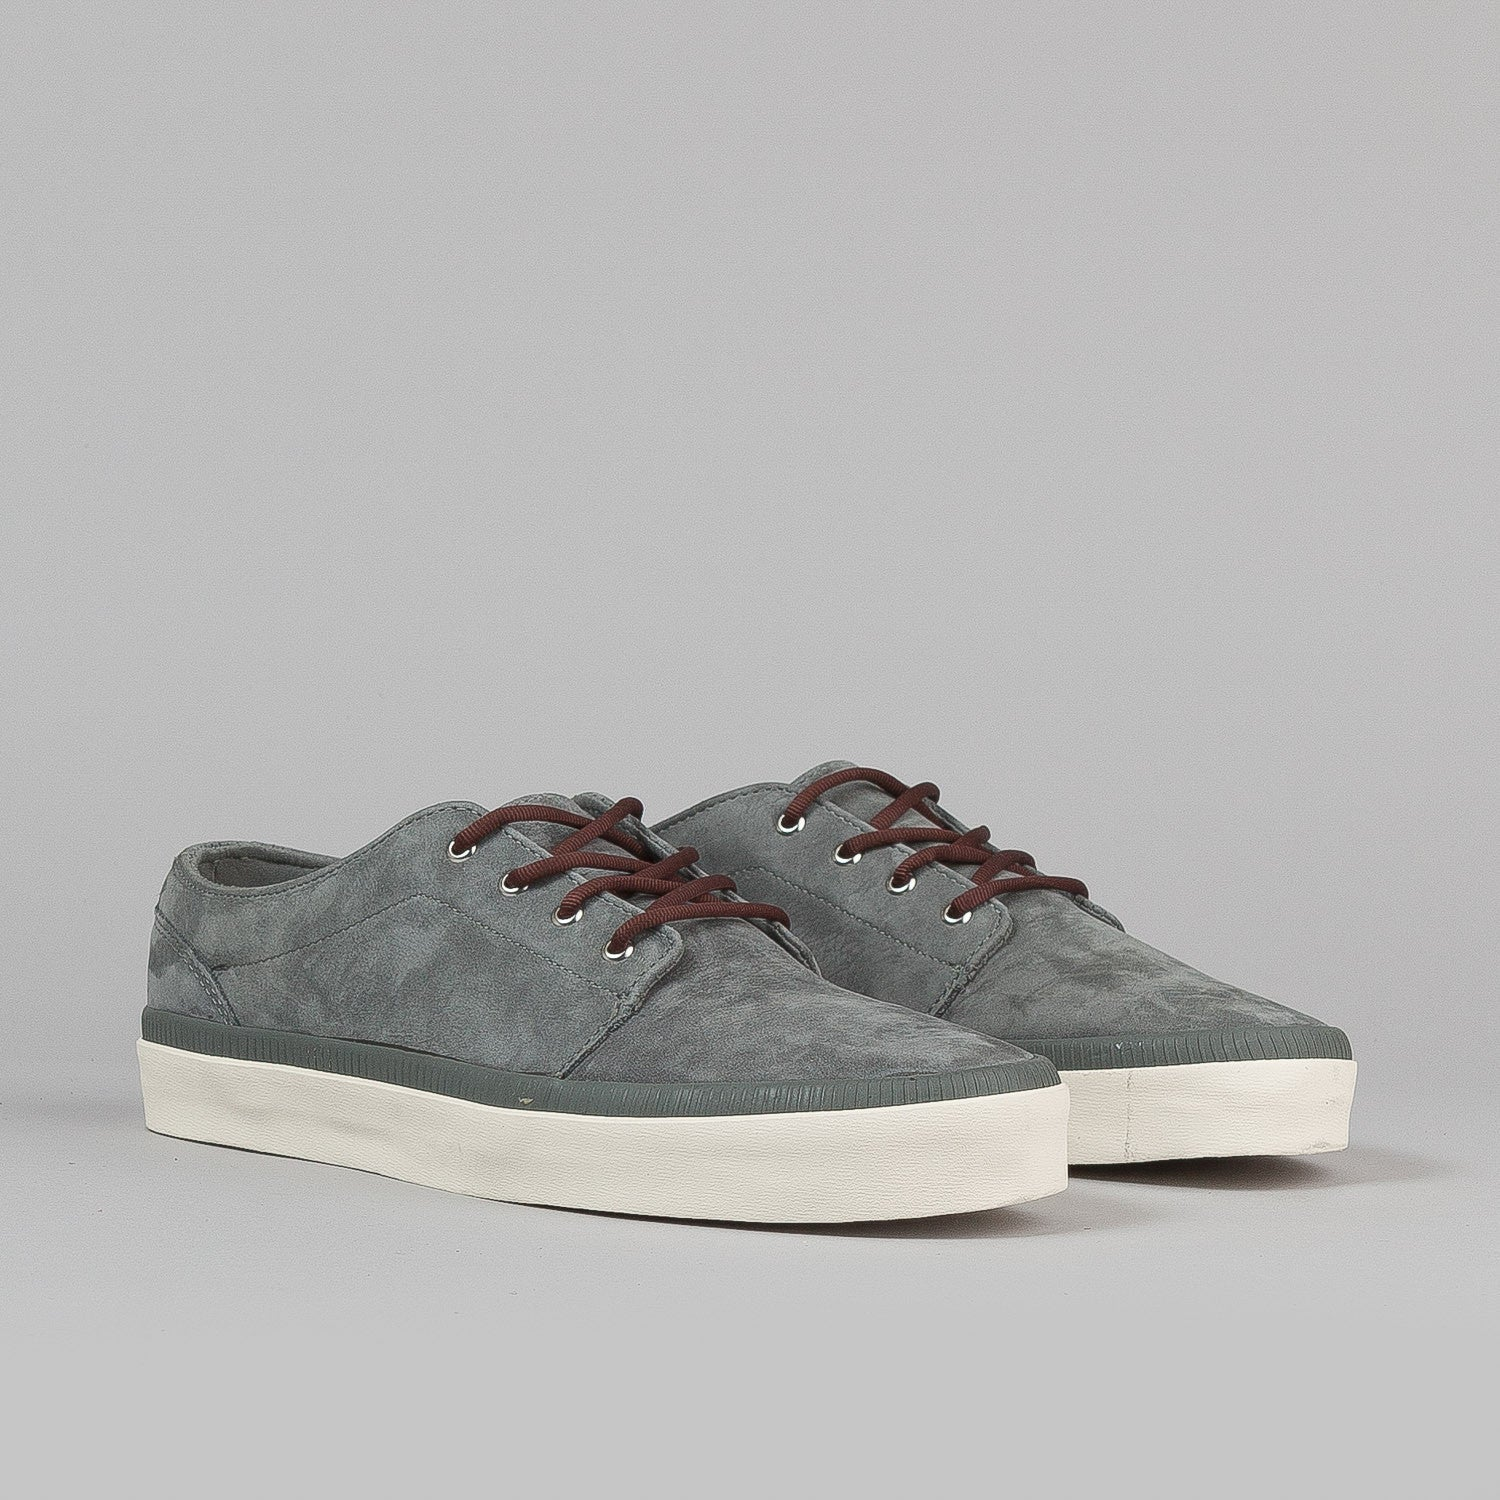 Vans 106 Vulc CA Shoes - (Summer Buck) Castor Grey